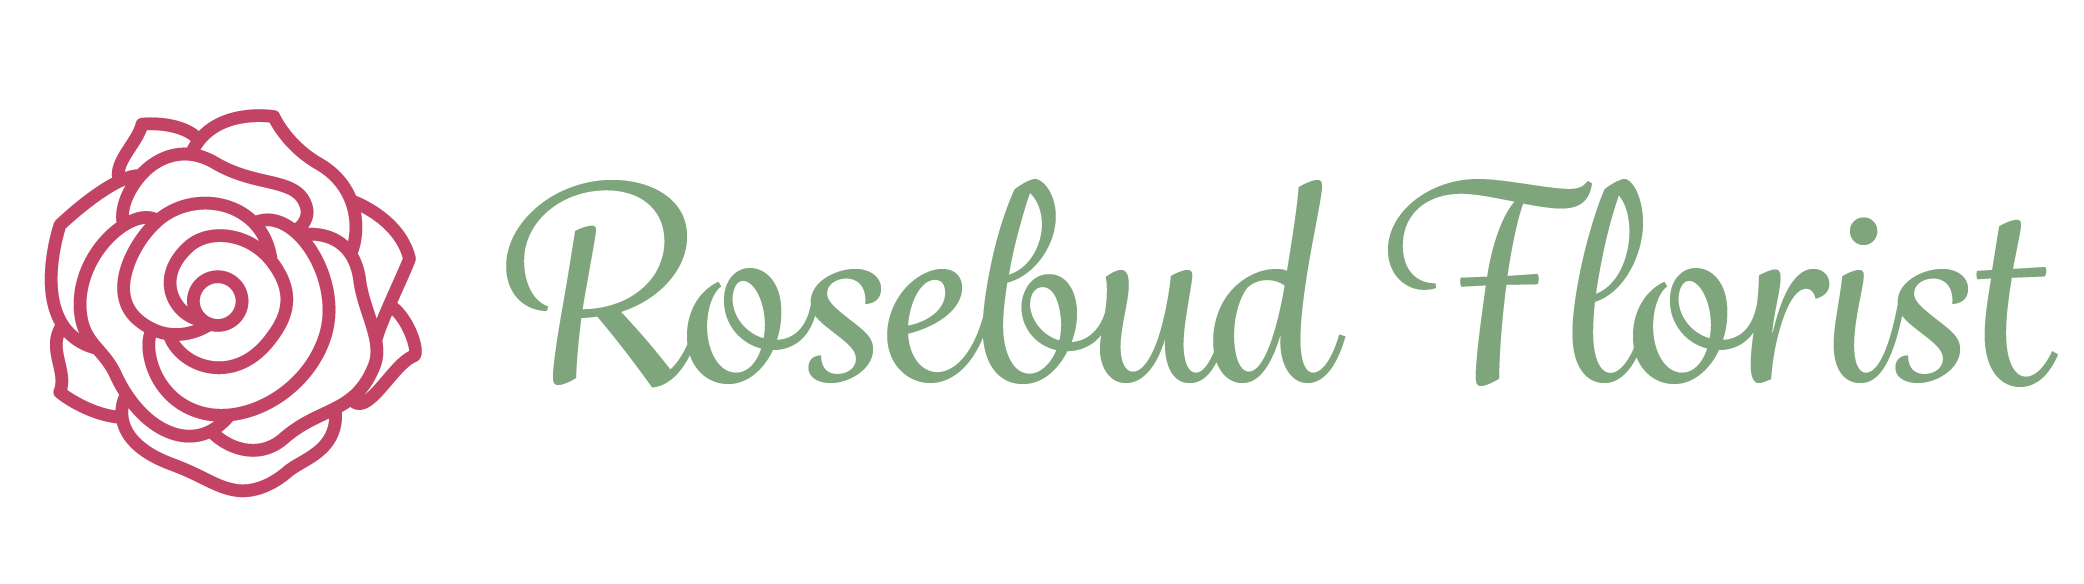 Rosebud Florist - Flower Delivery in Brooklyn, NY